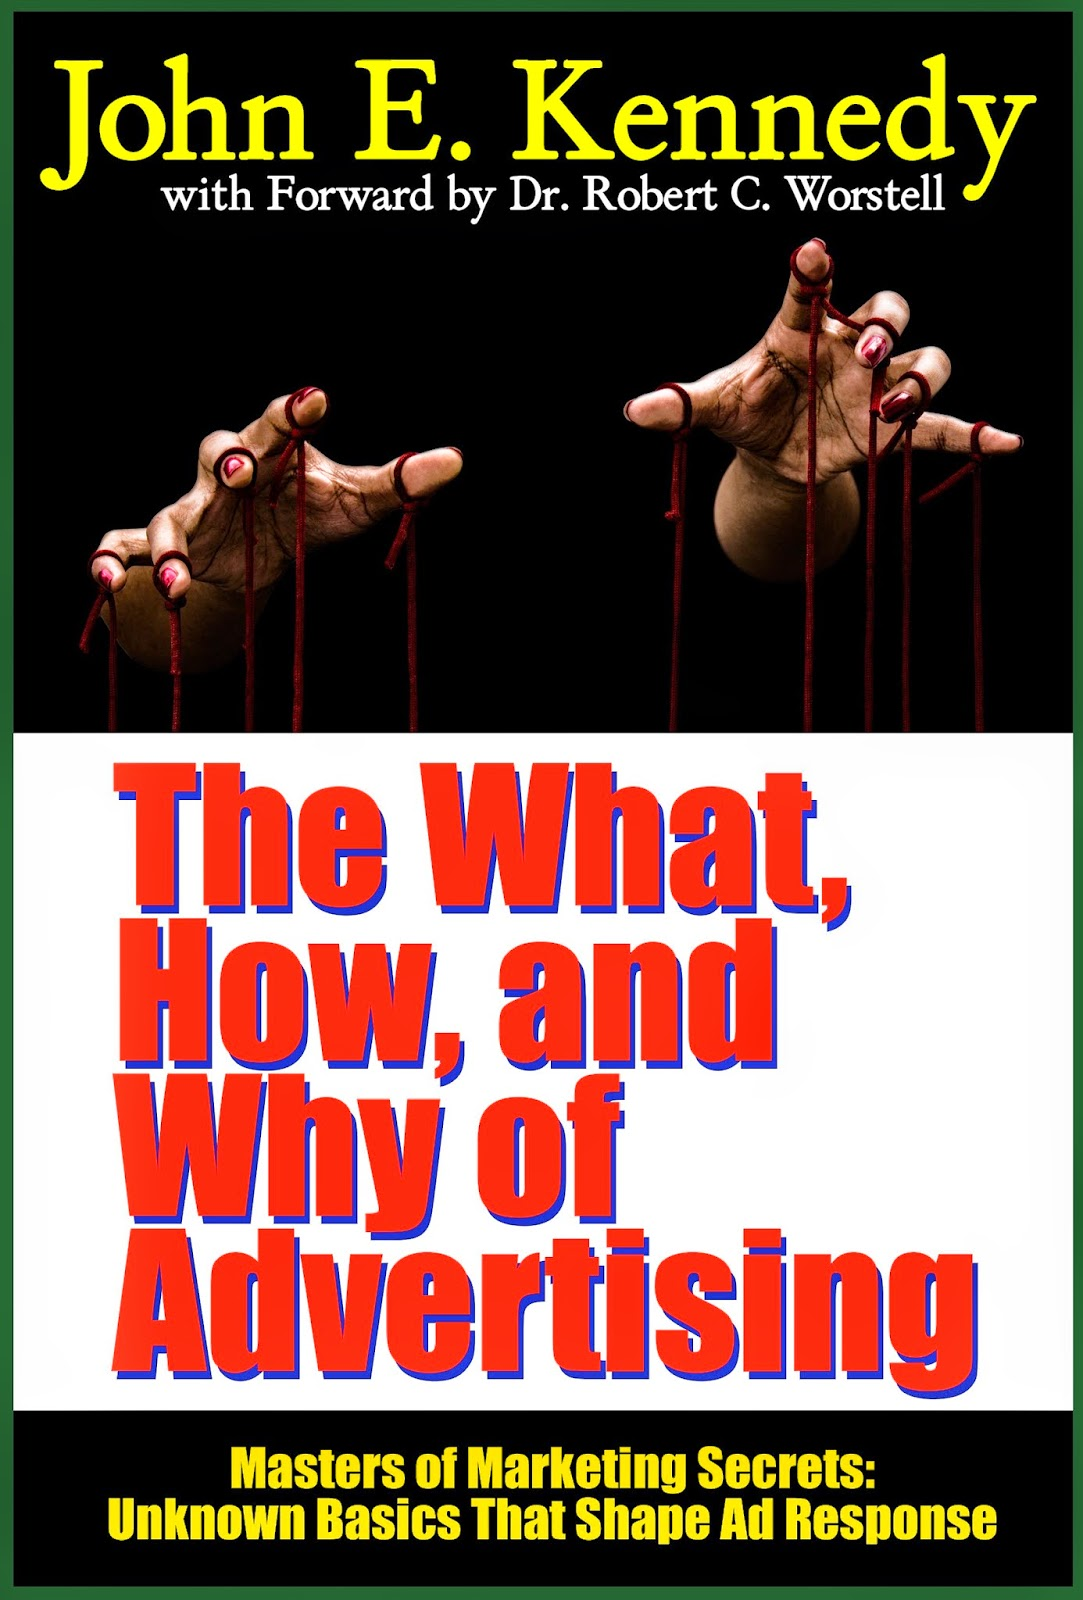 John E. Kennedy - Reason Why and Intensive Advertisting - now in print again!